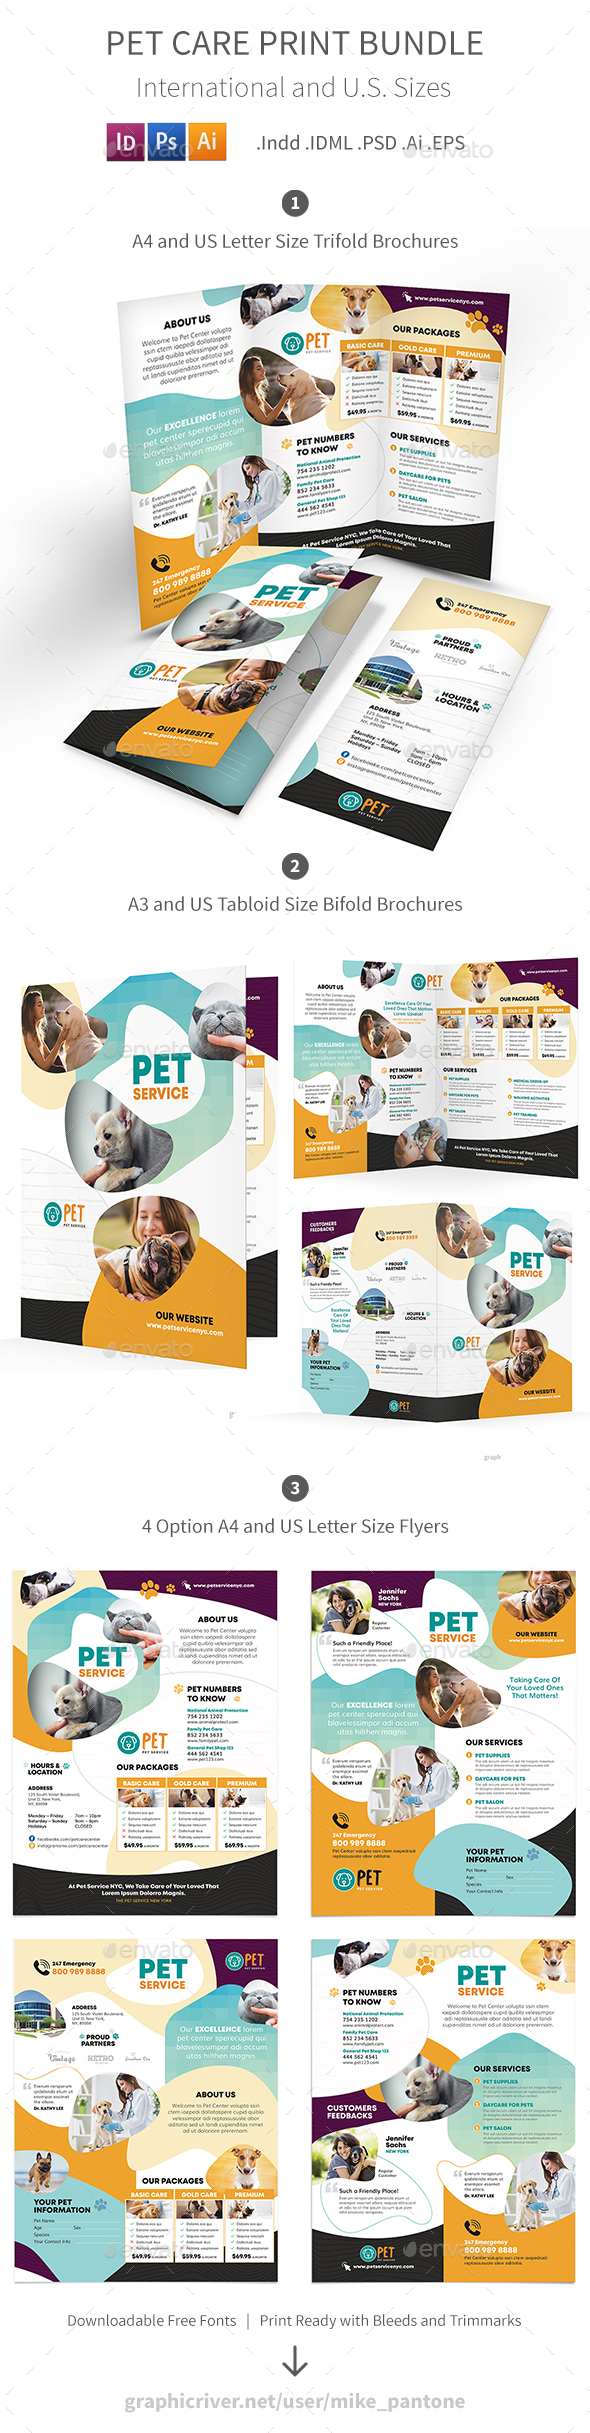 Pet Care Print Bundle 7 - Informational Brochures